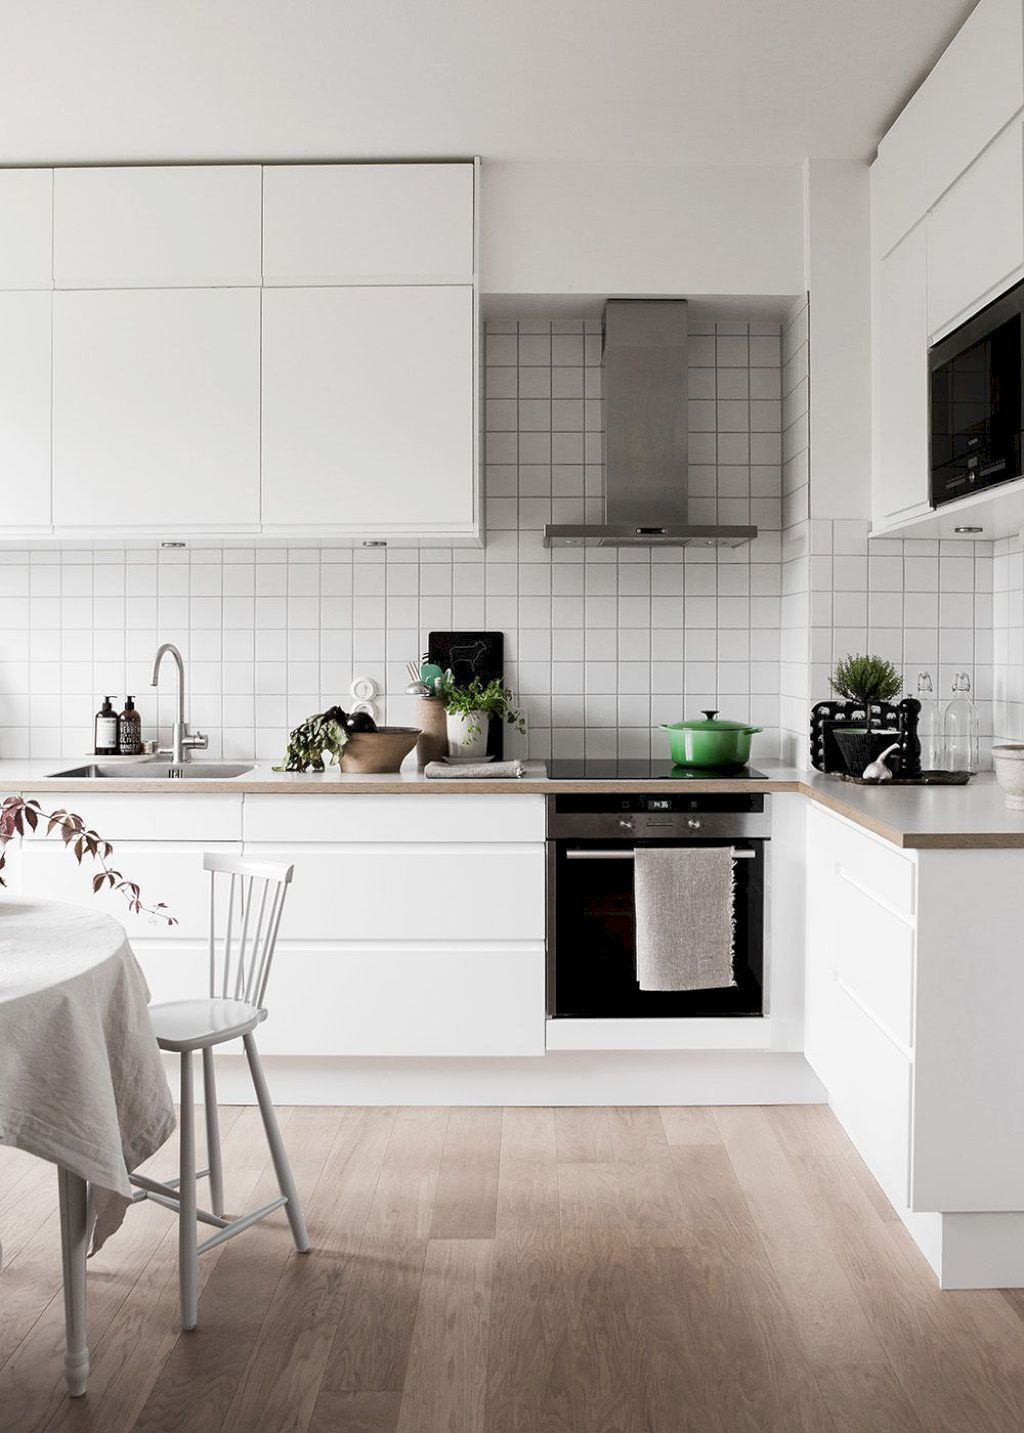 Adorable 60 Awesome Scandinavian Kitchen Decor and